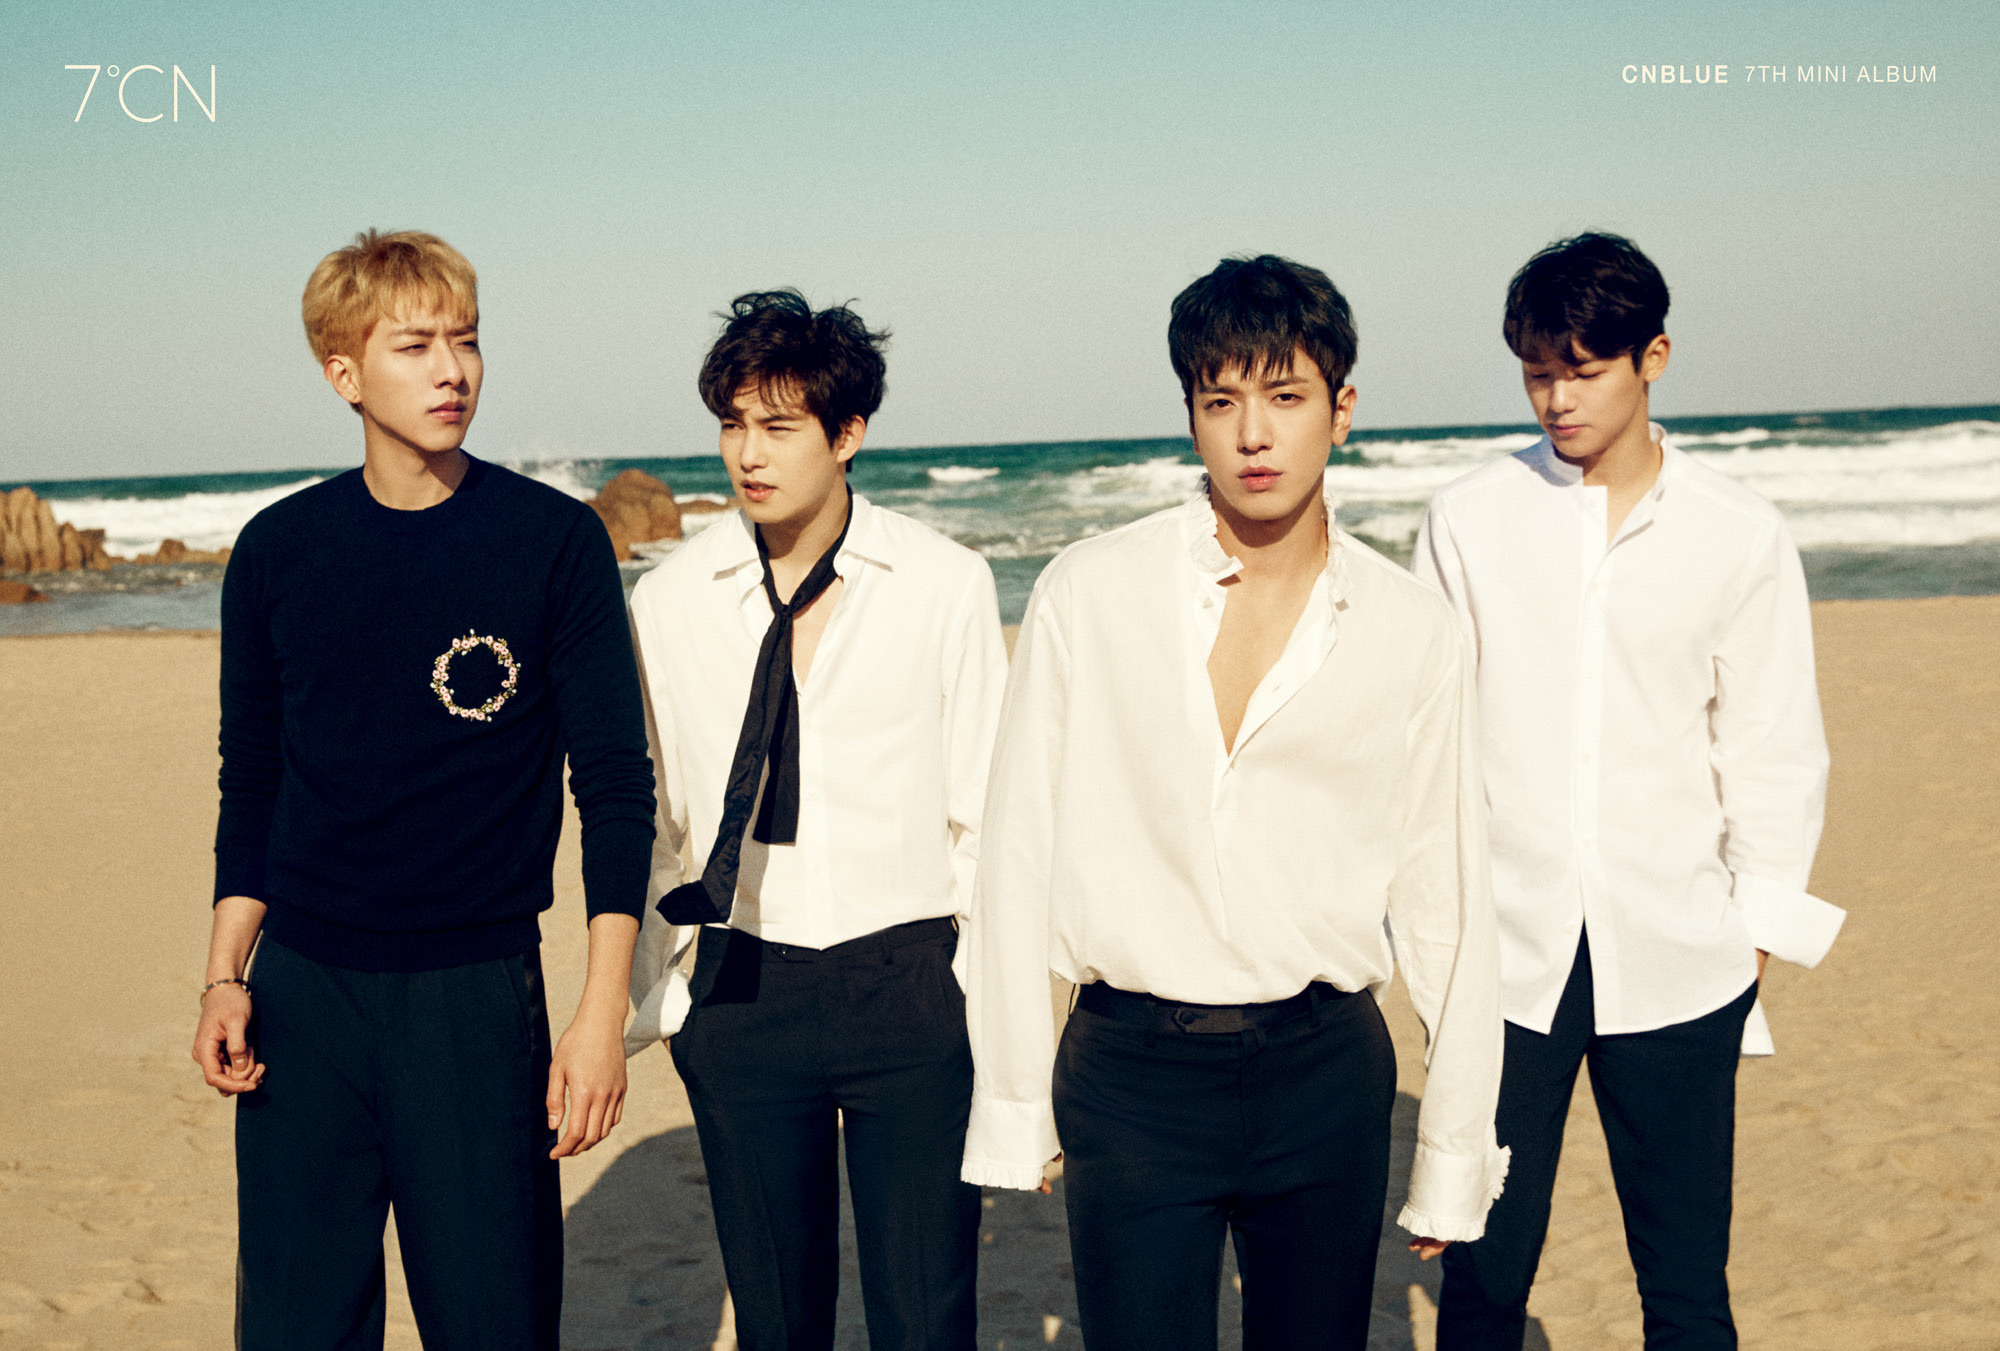 Image result for cnblue images kpop